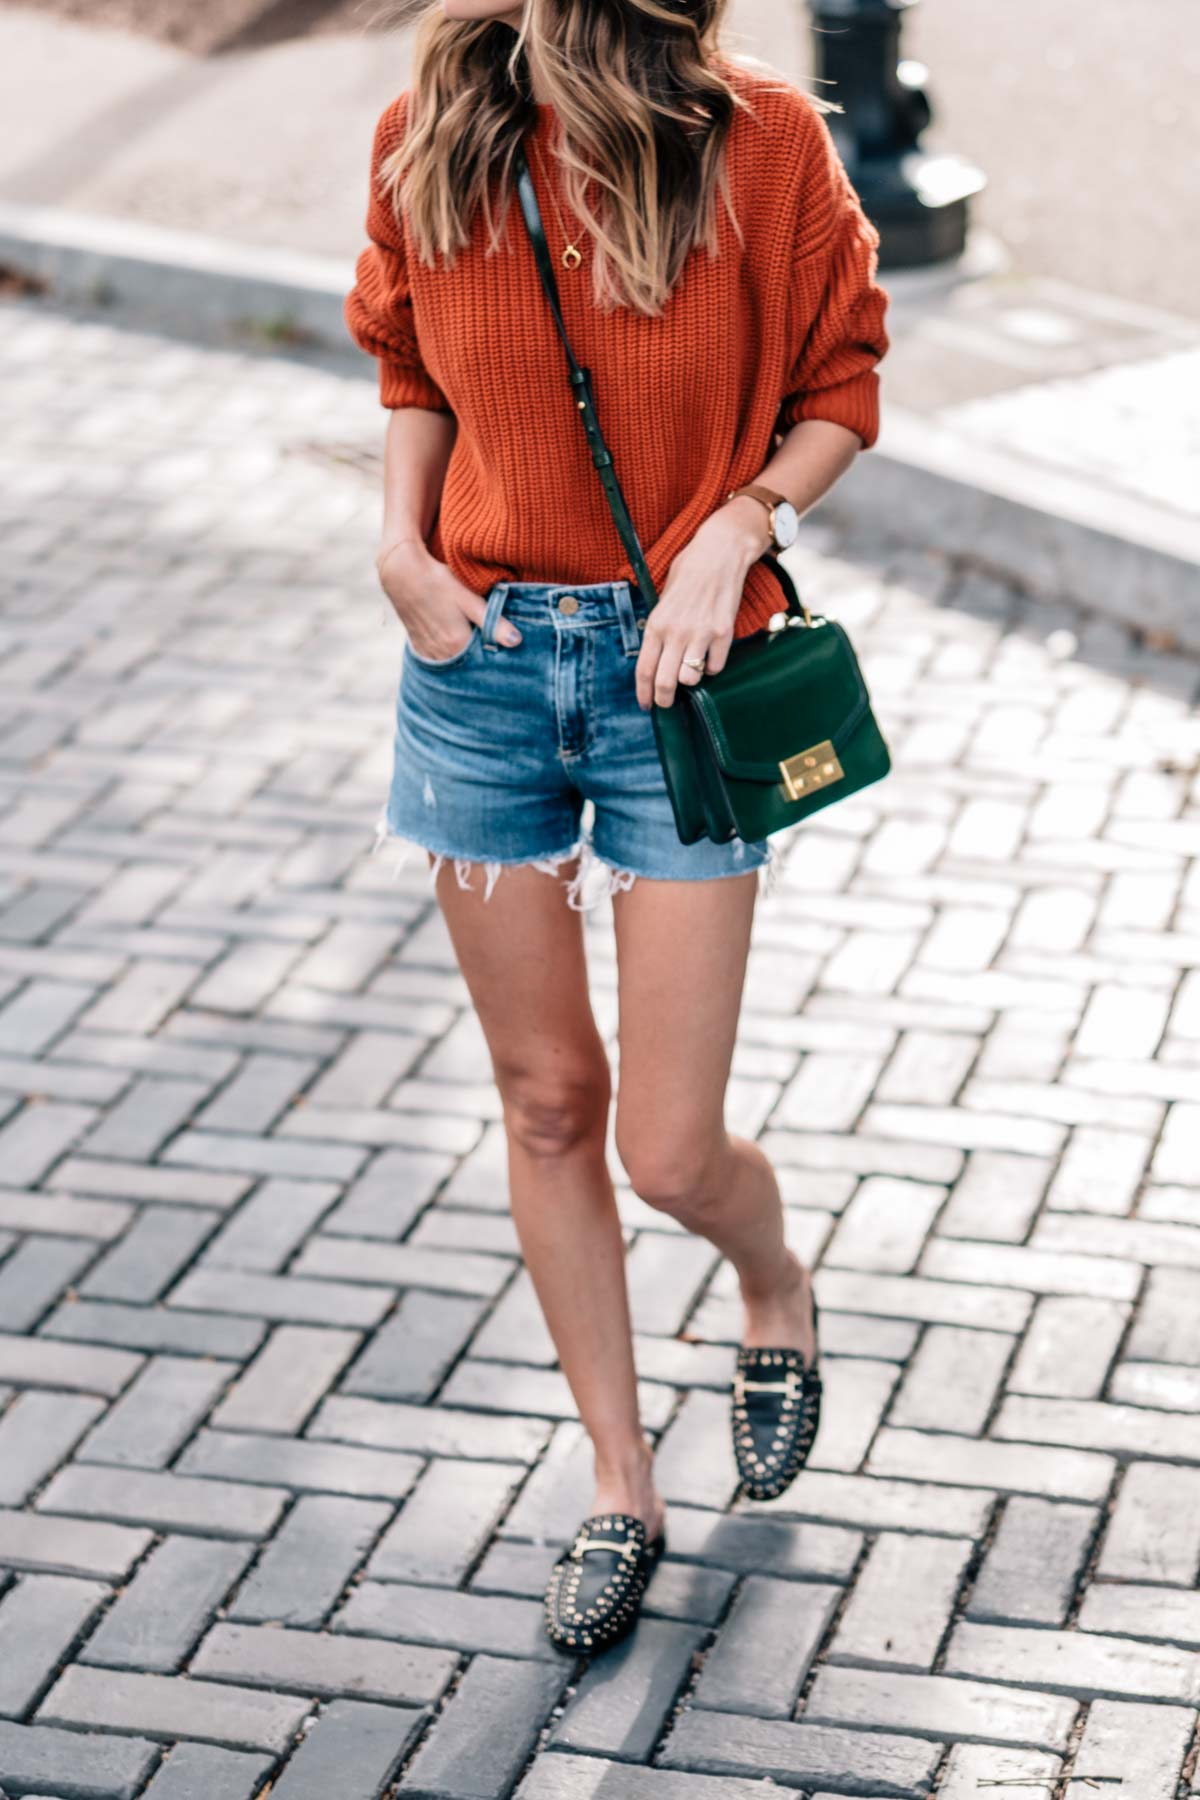 Fall style on Jess Kirby wearing a chunky knit sweater, jean shorts and sam edelman marilyn studded slides